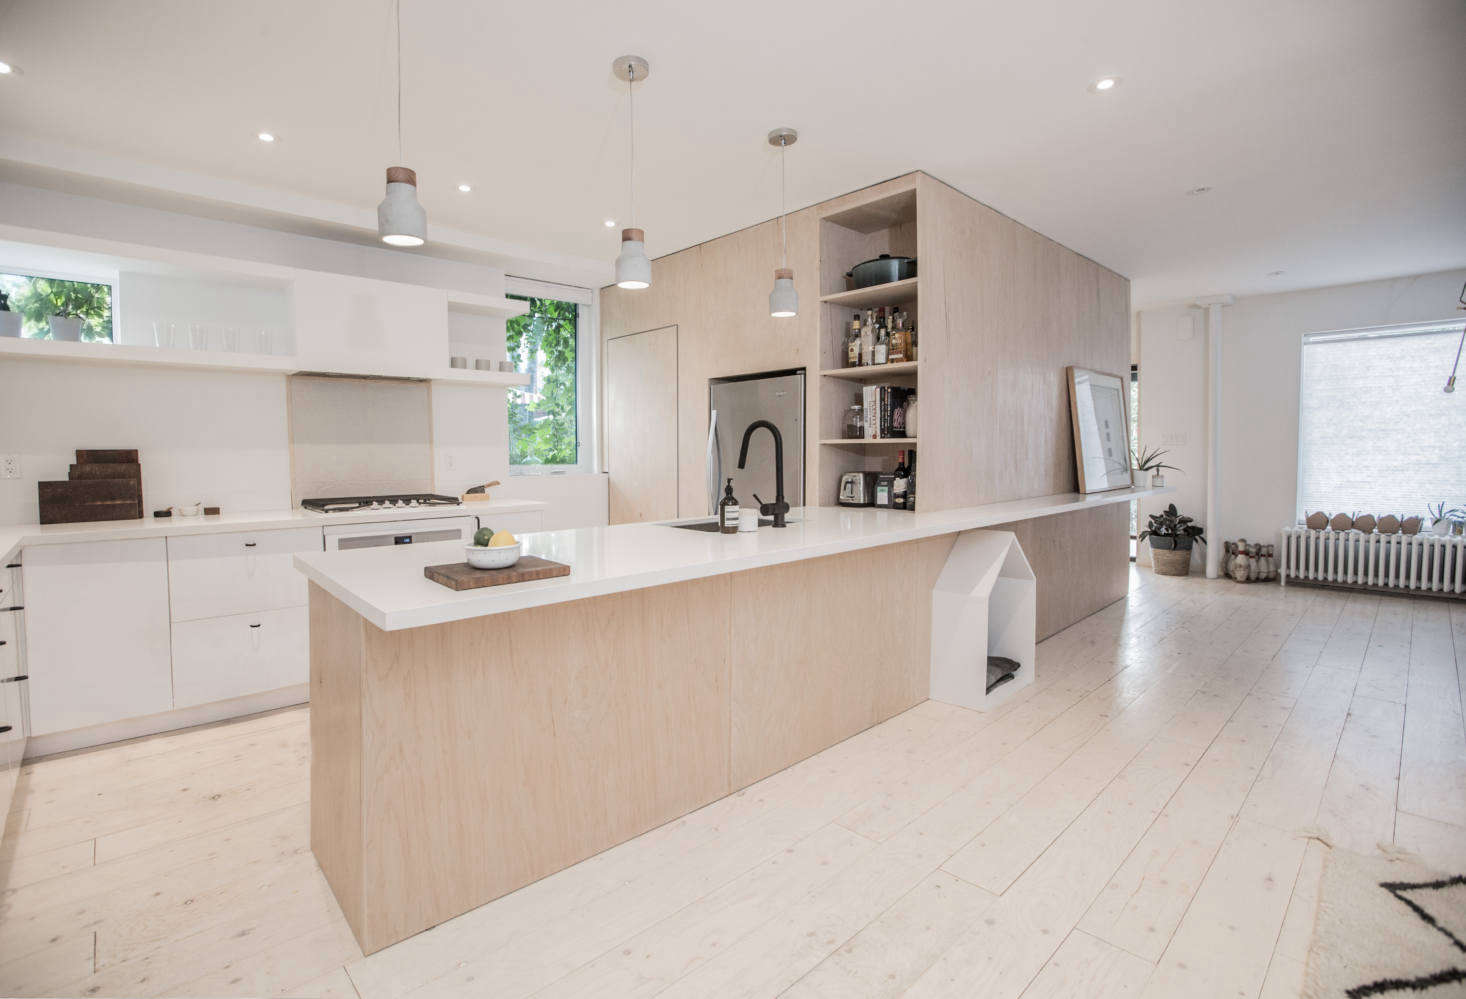 The kitchen is fitted with simple white Ikea cabinets paired with custom overhead open shelving of painted wood. The counters are white CaesarStone (read about it in Remodeling 101: 7 Things to Know about Engineered Quartz Countertops).